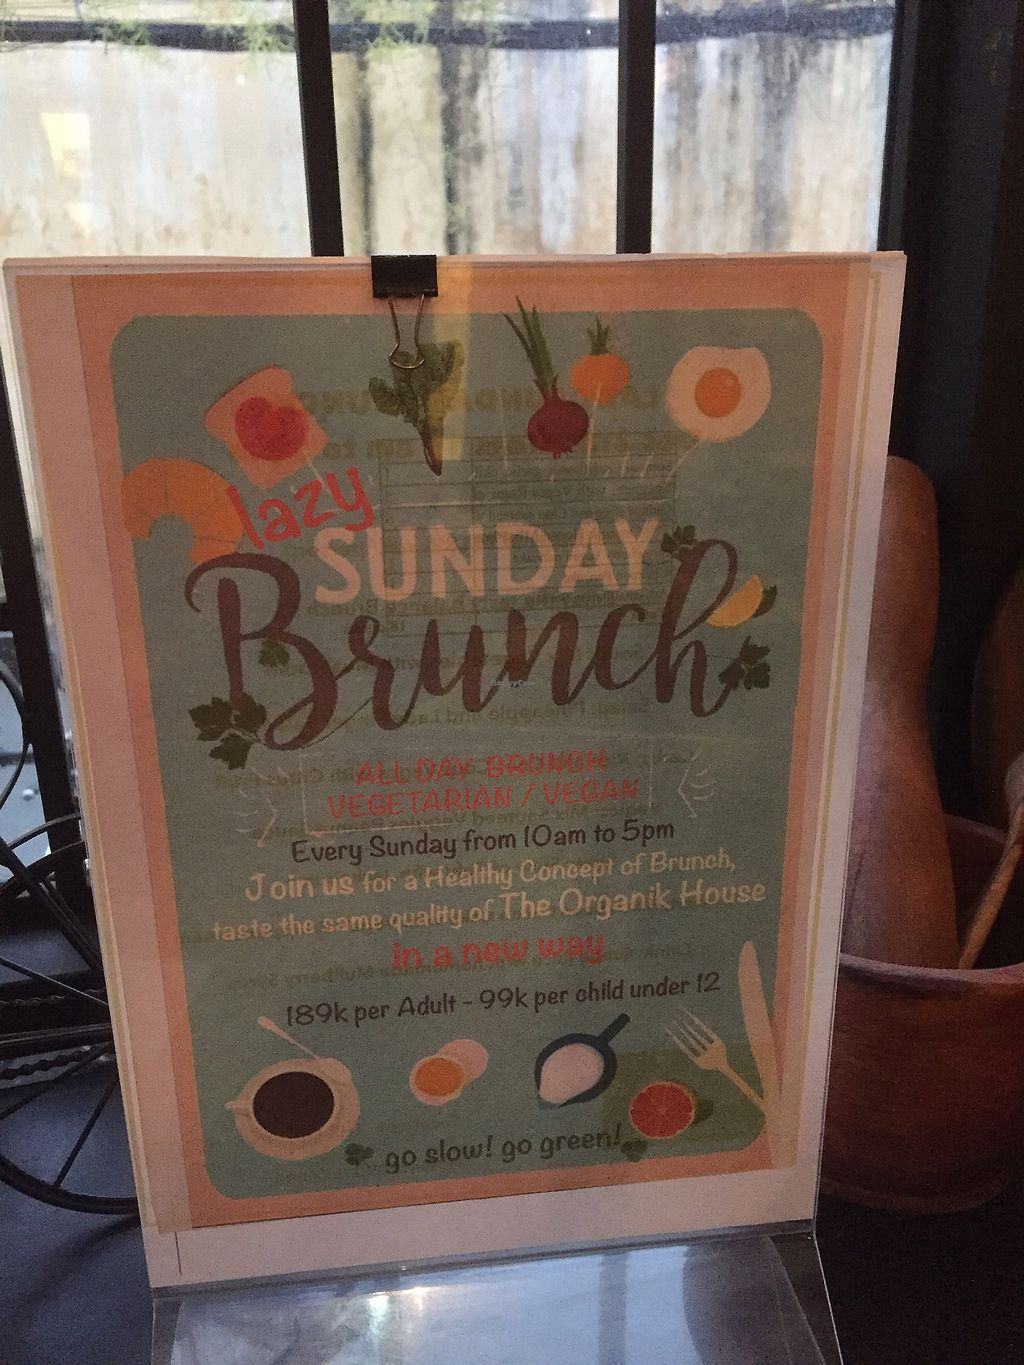 """Photo of The Organik House  by <a href=""""/members/profile/SusanRoberts"""">SusanRoberts</a> <br/>Sunday Brunch <br/> January 7, 2018  - <a href='/contact/abuse/image/89675/343929'>Report</a>"""